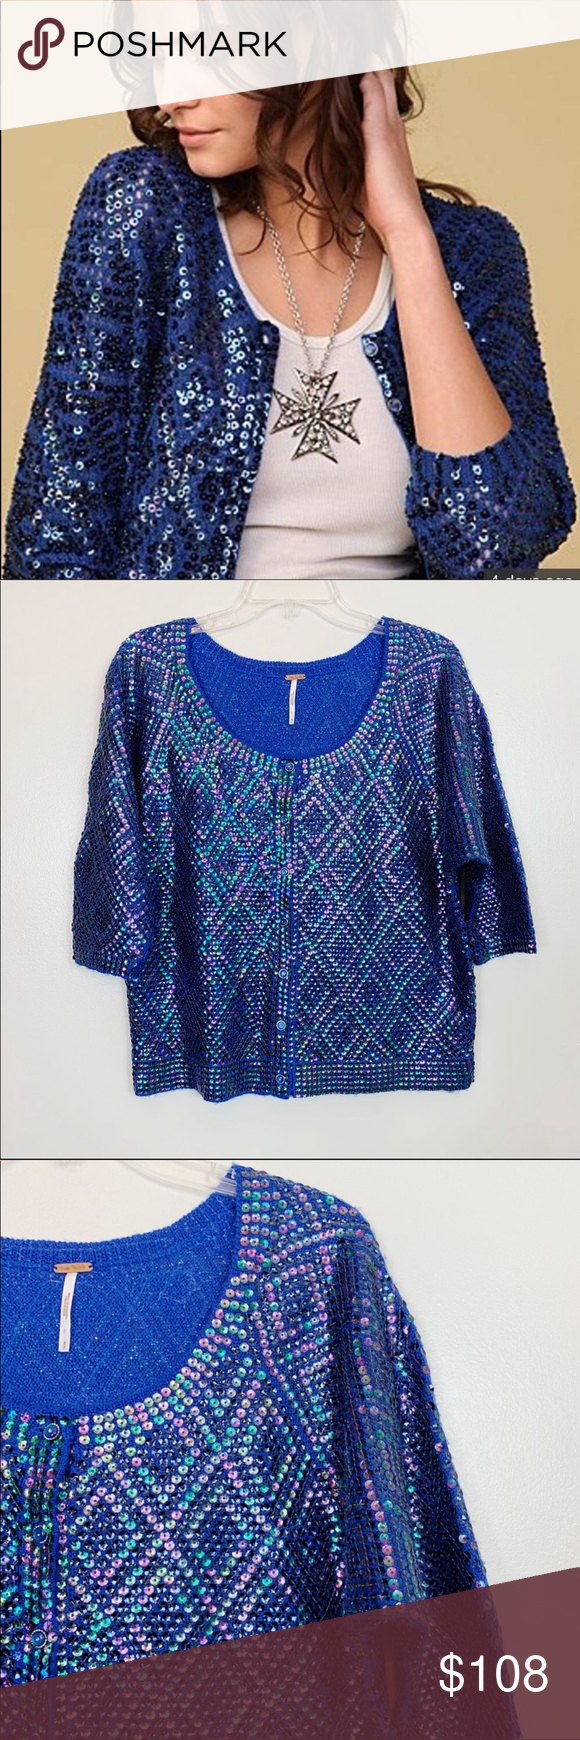 , Free People Pop Star Sequin Crop Cardigan Size Small, in fantastic pre owned condition. Perfect for Fall season. Free People Showstopper pop star irid…, My Pop Star Kda Blog, My Pop Star Kda Blog